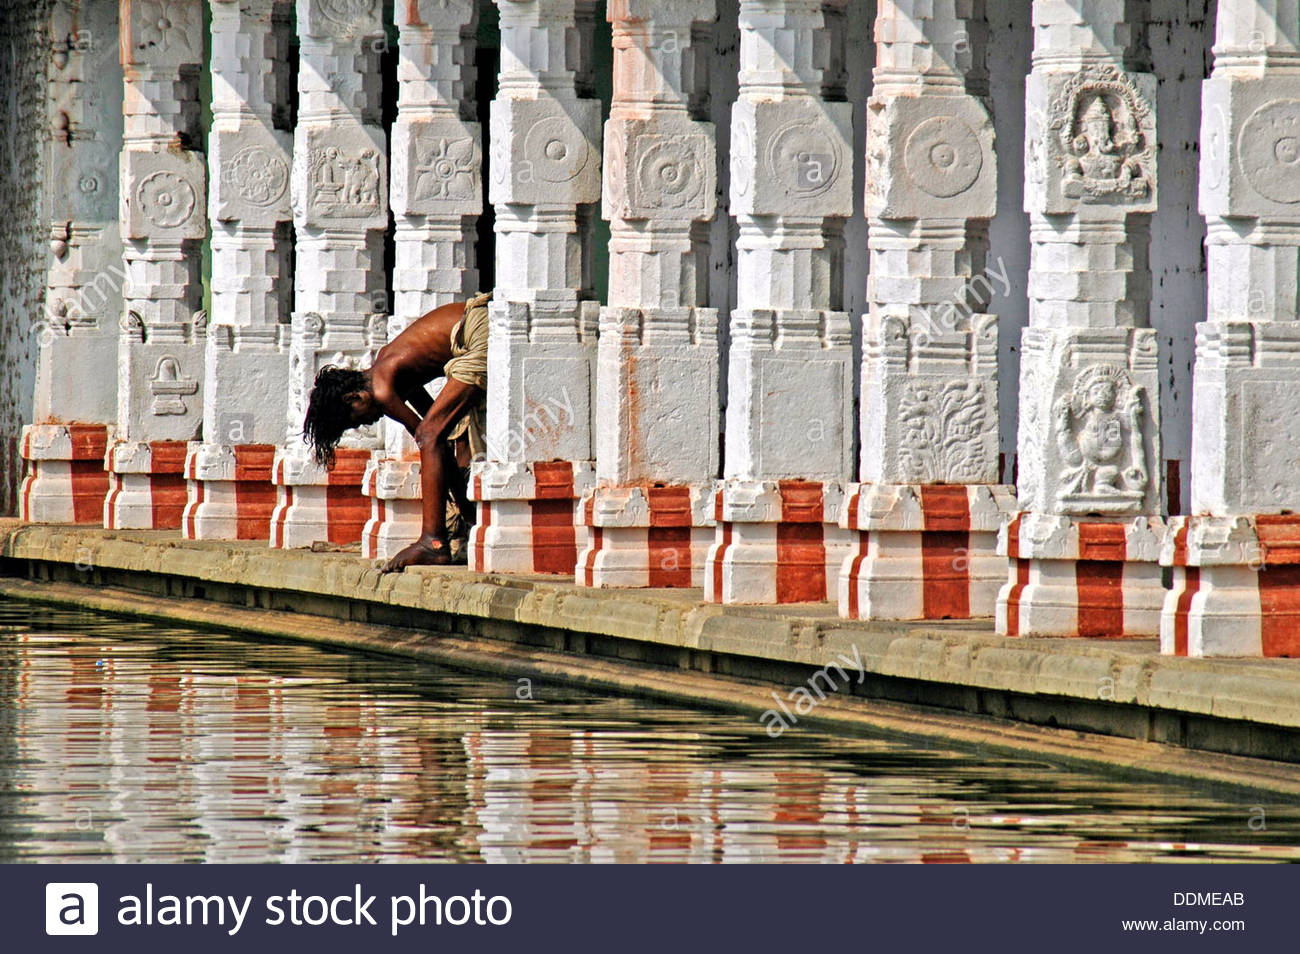 Colonnade and bather, Sarangapani Vishnu Temple, Kumbakonam, Tamil Nadu, India. - Stock Image